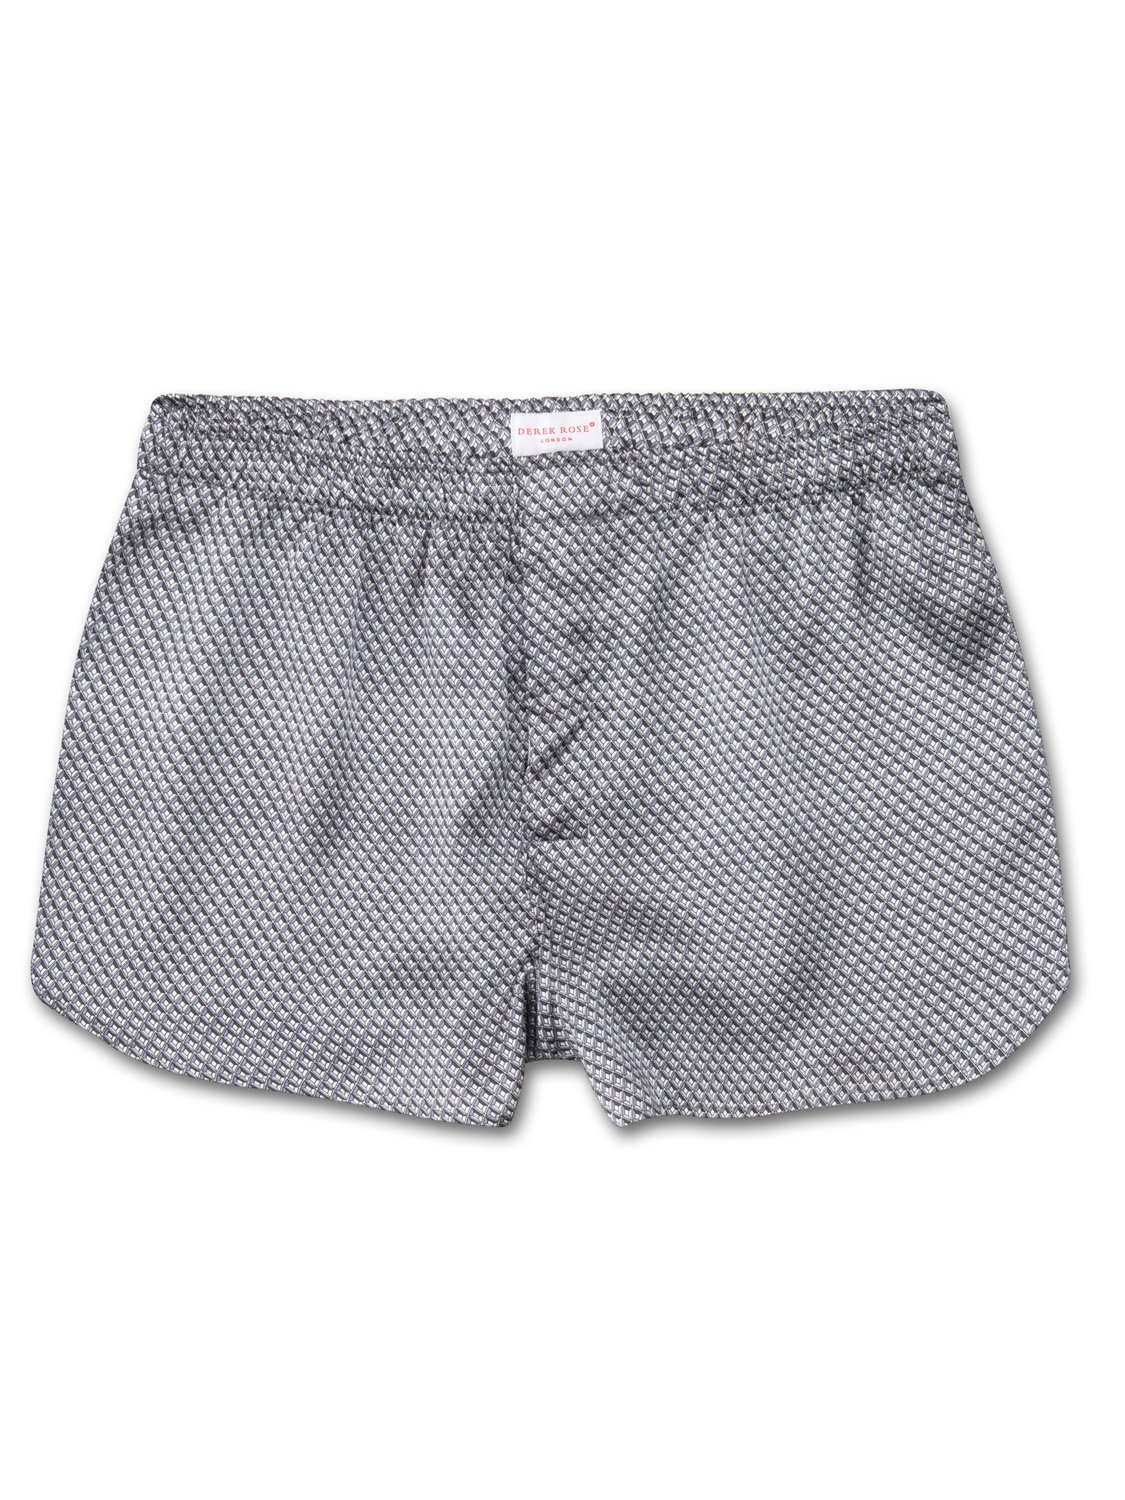 Men's Modern Fit Boxer Shorts Brindisi 13 Pure Silk Satin Silver